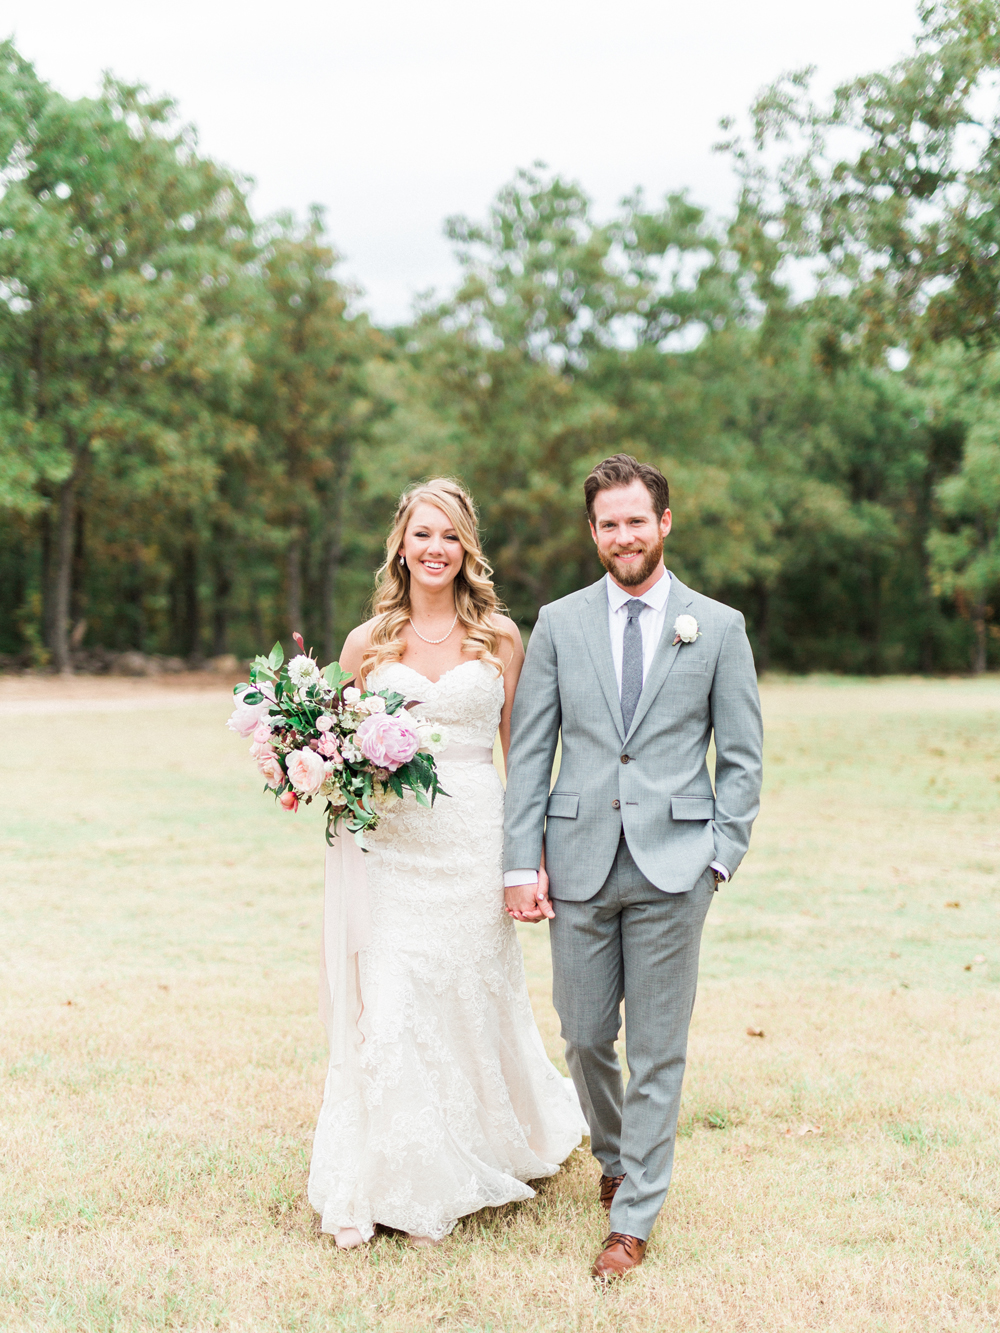 wedding portraits - photo by Elisabeth Carol Photography http://ruffledblog.com/picturesque-garden-wedding-at-white-sparrow-barn